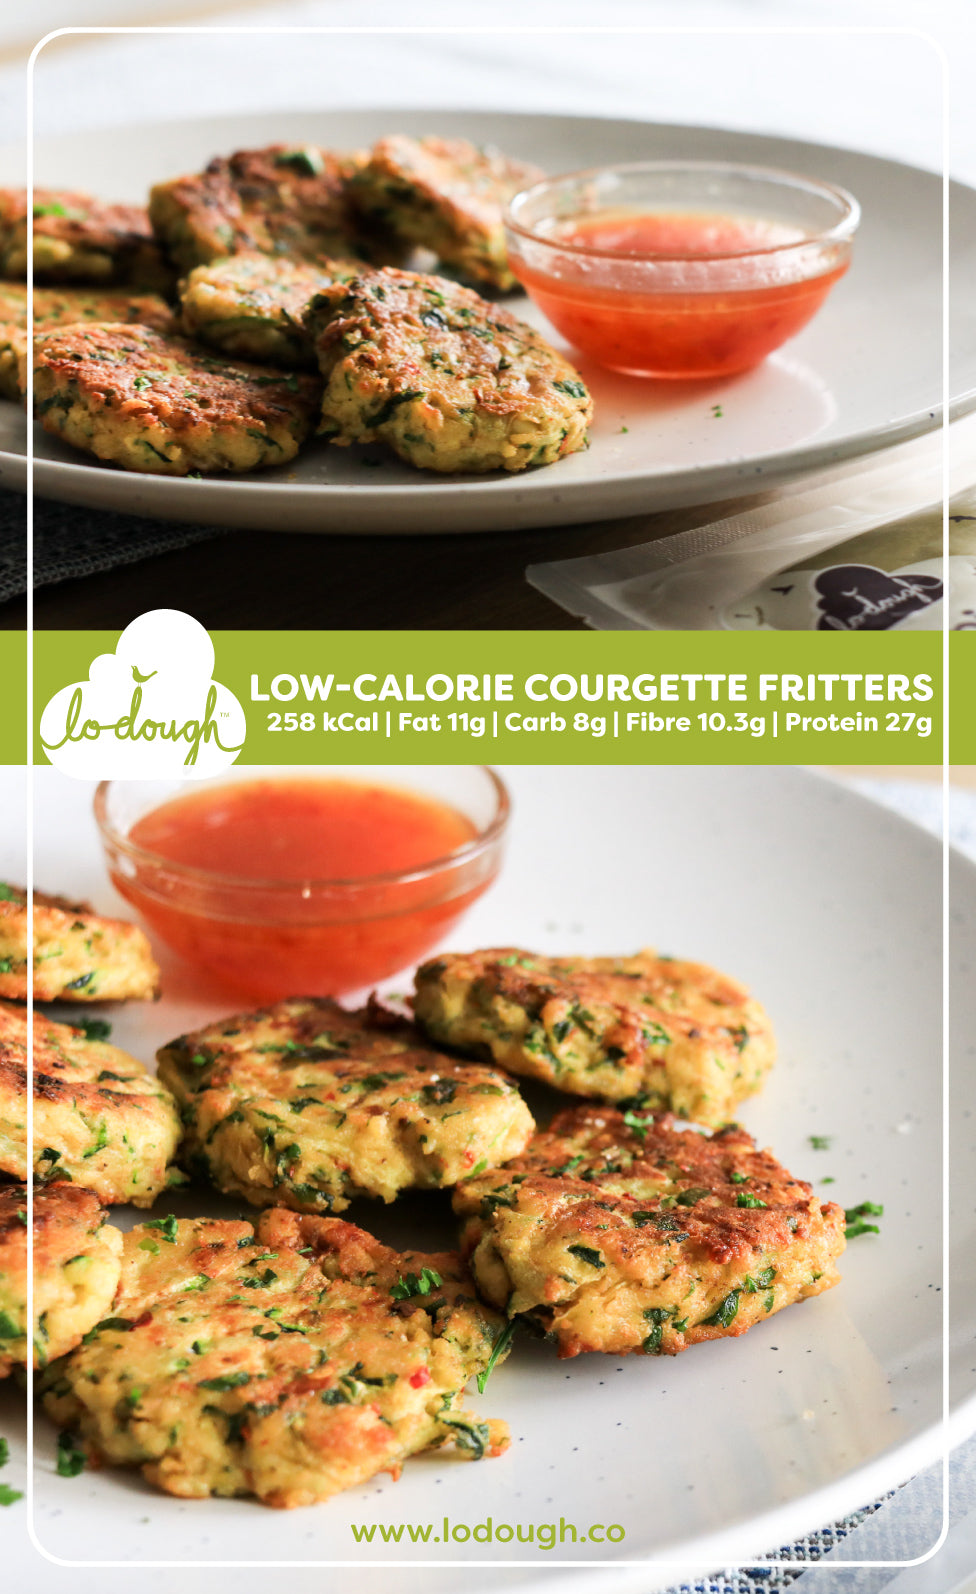 Low-Cal Courgette Fritters